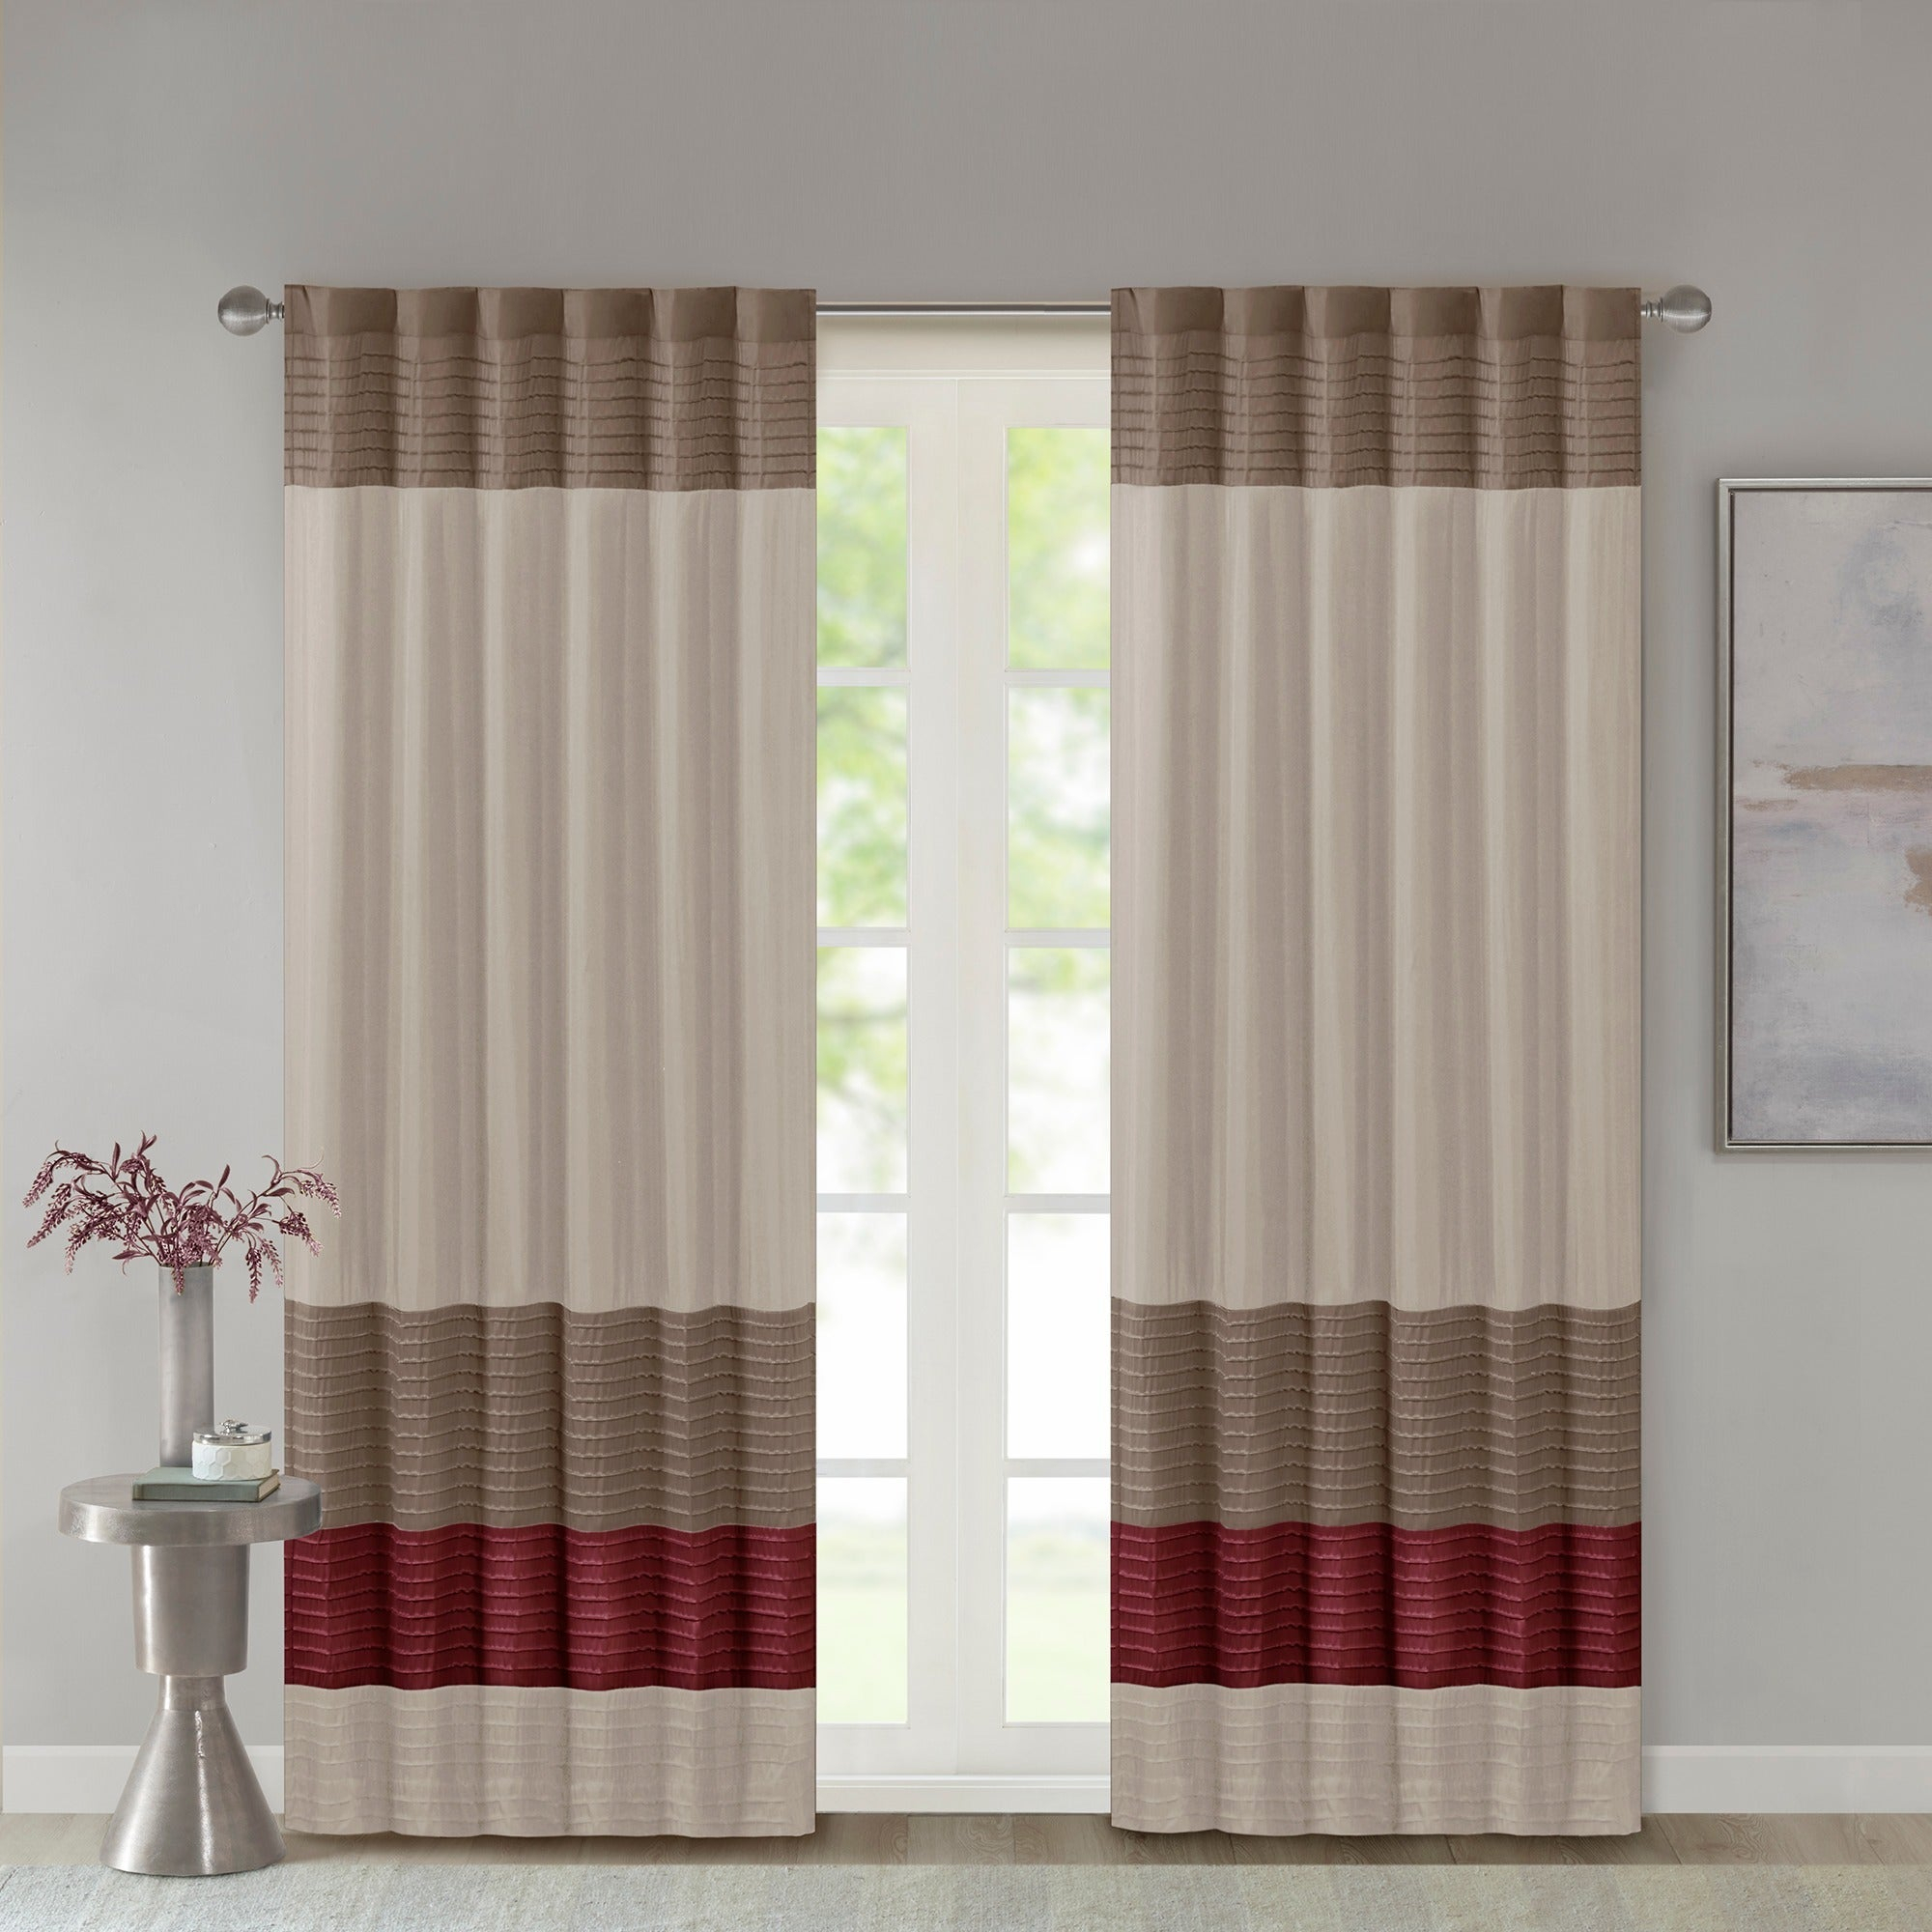 Madison Park Tradewinds Polyoni Pintuck Single Curtain Panel – 50 X 84 With Regard To Chester Polyoni Pintuck Curtain Panels (View 14 of 20)